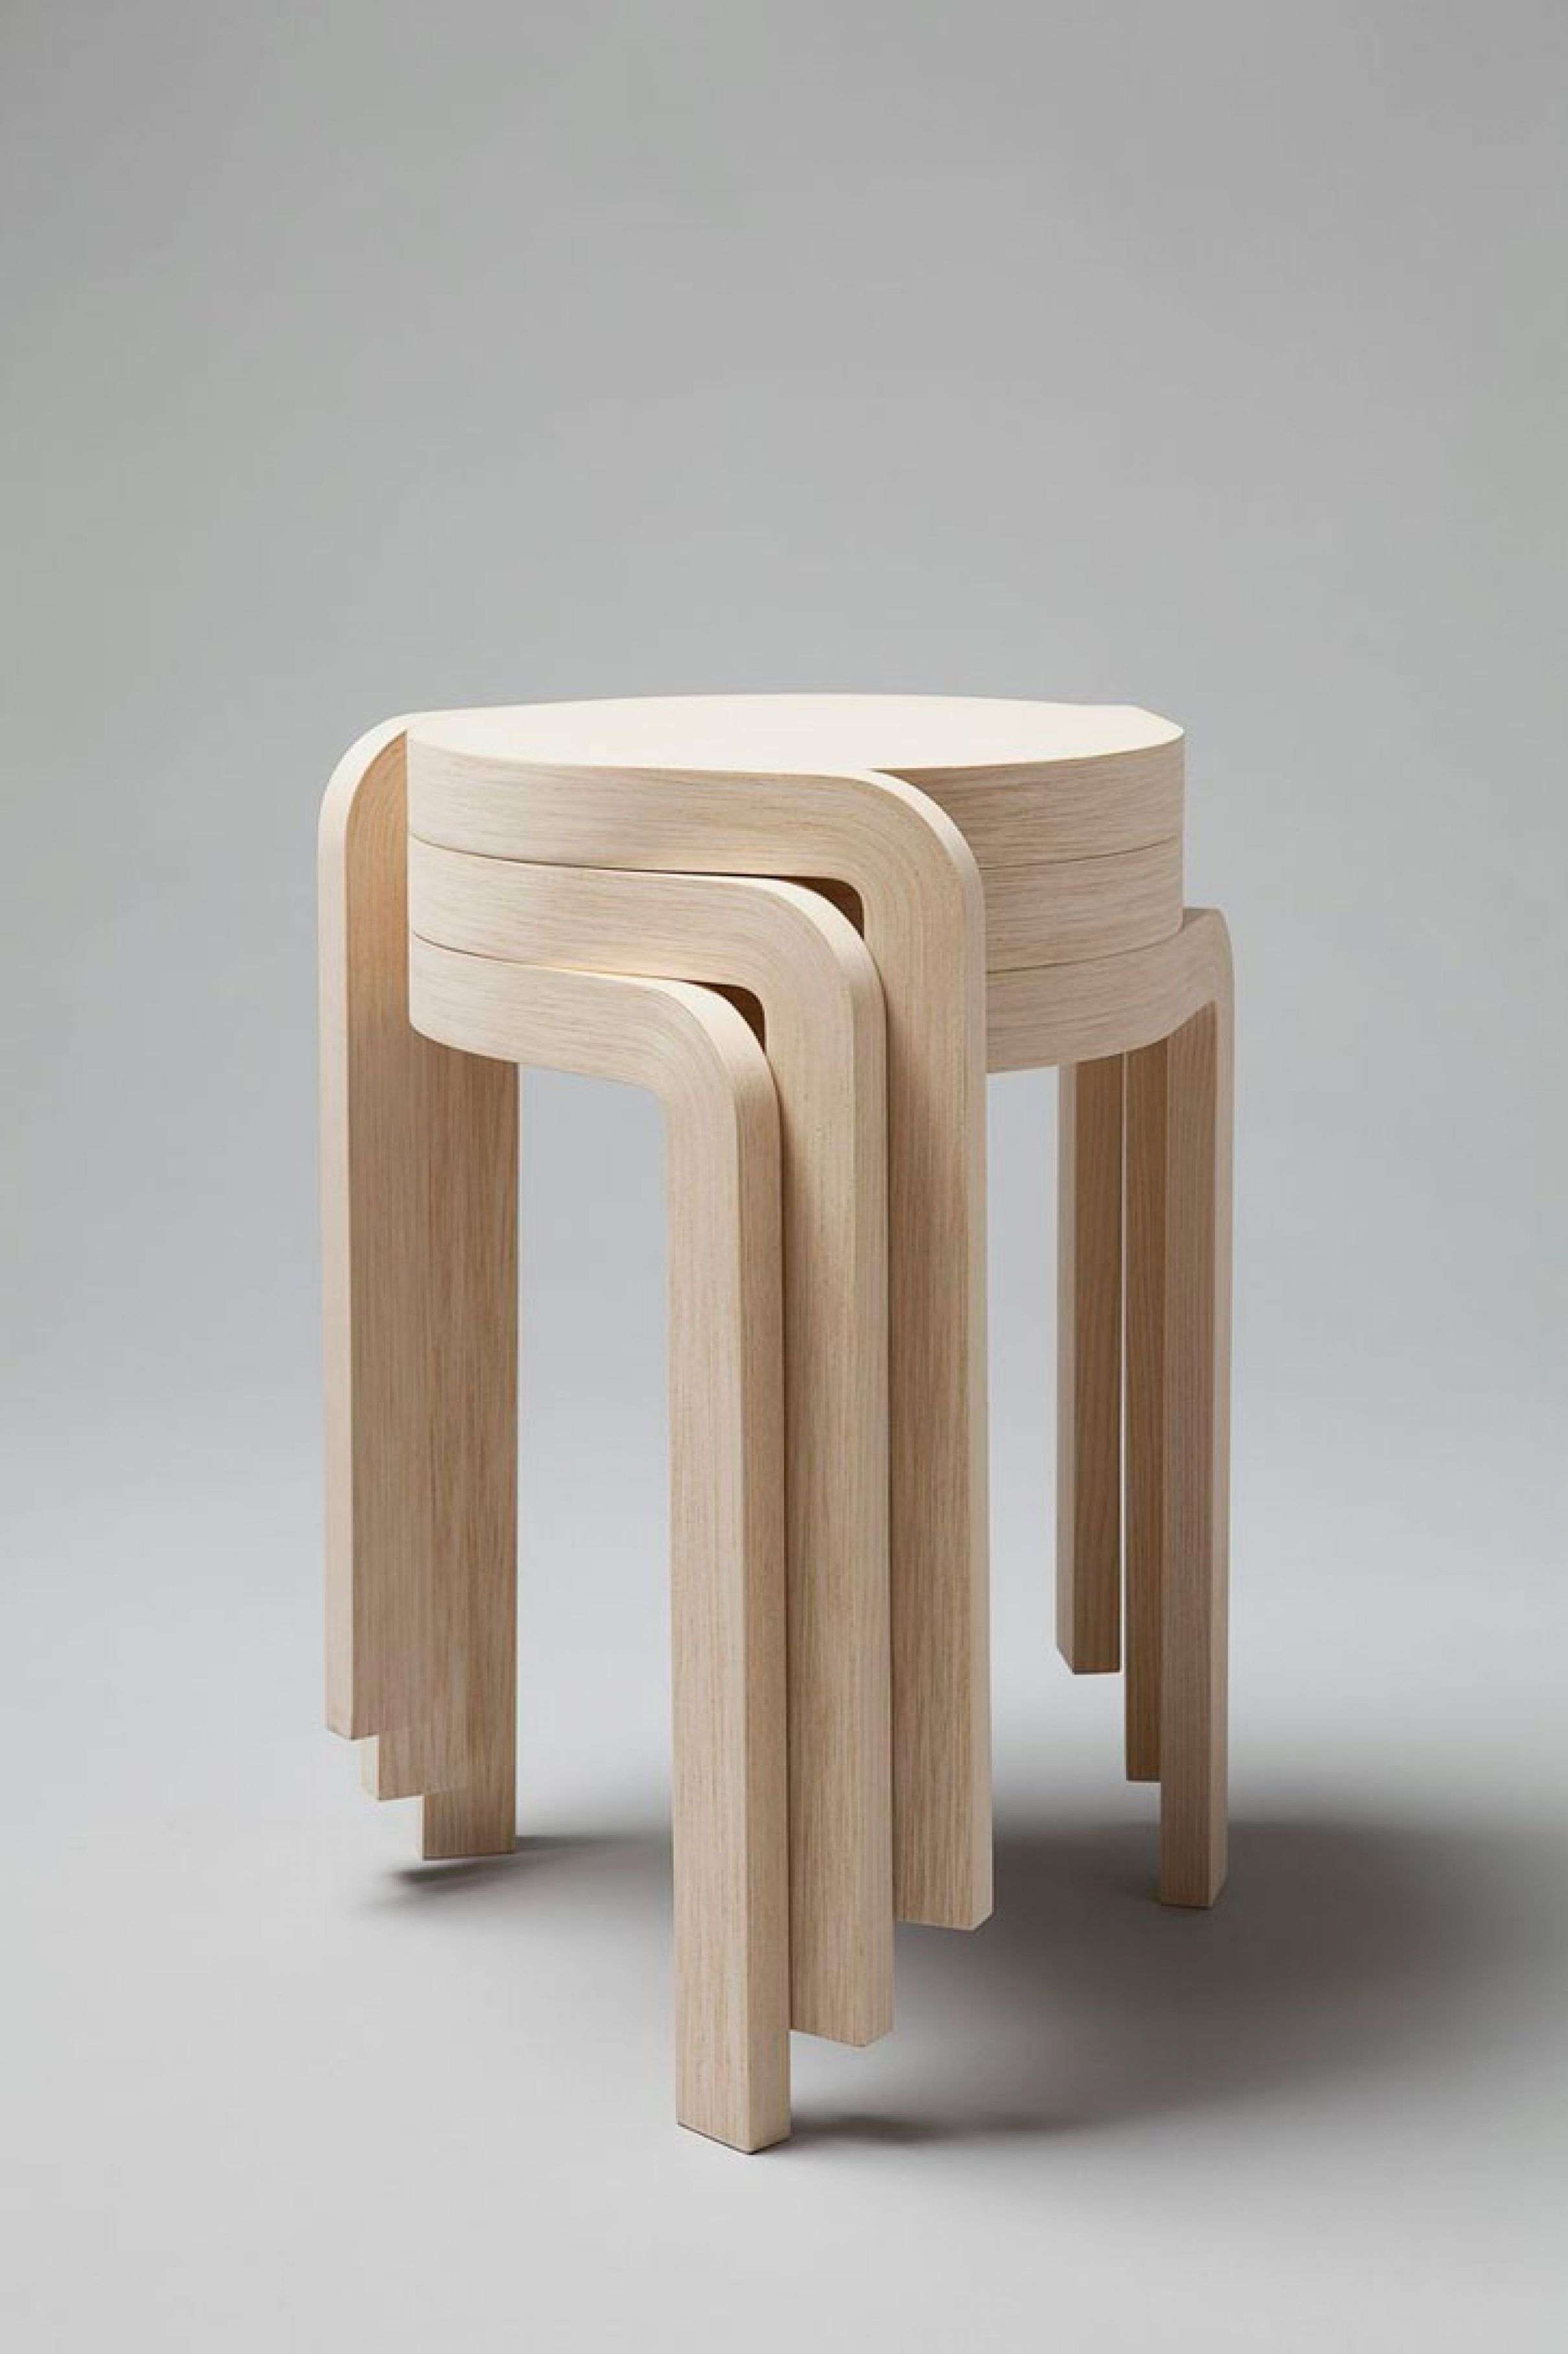 The Attractive And Modern Form Of These Stacking Stools From Wood Is A  Stylish Combination Of Functionality, Interesting Design And A Way To Save  Space.